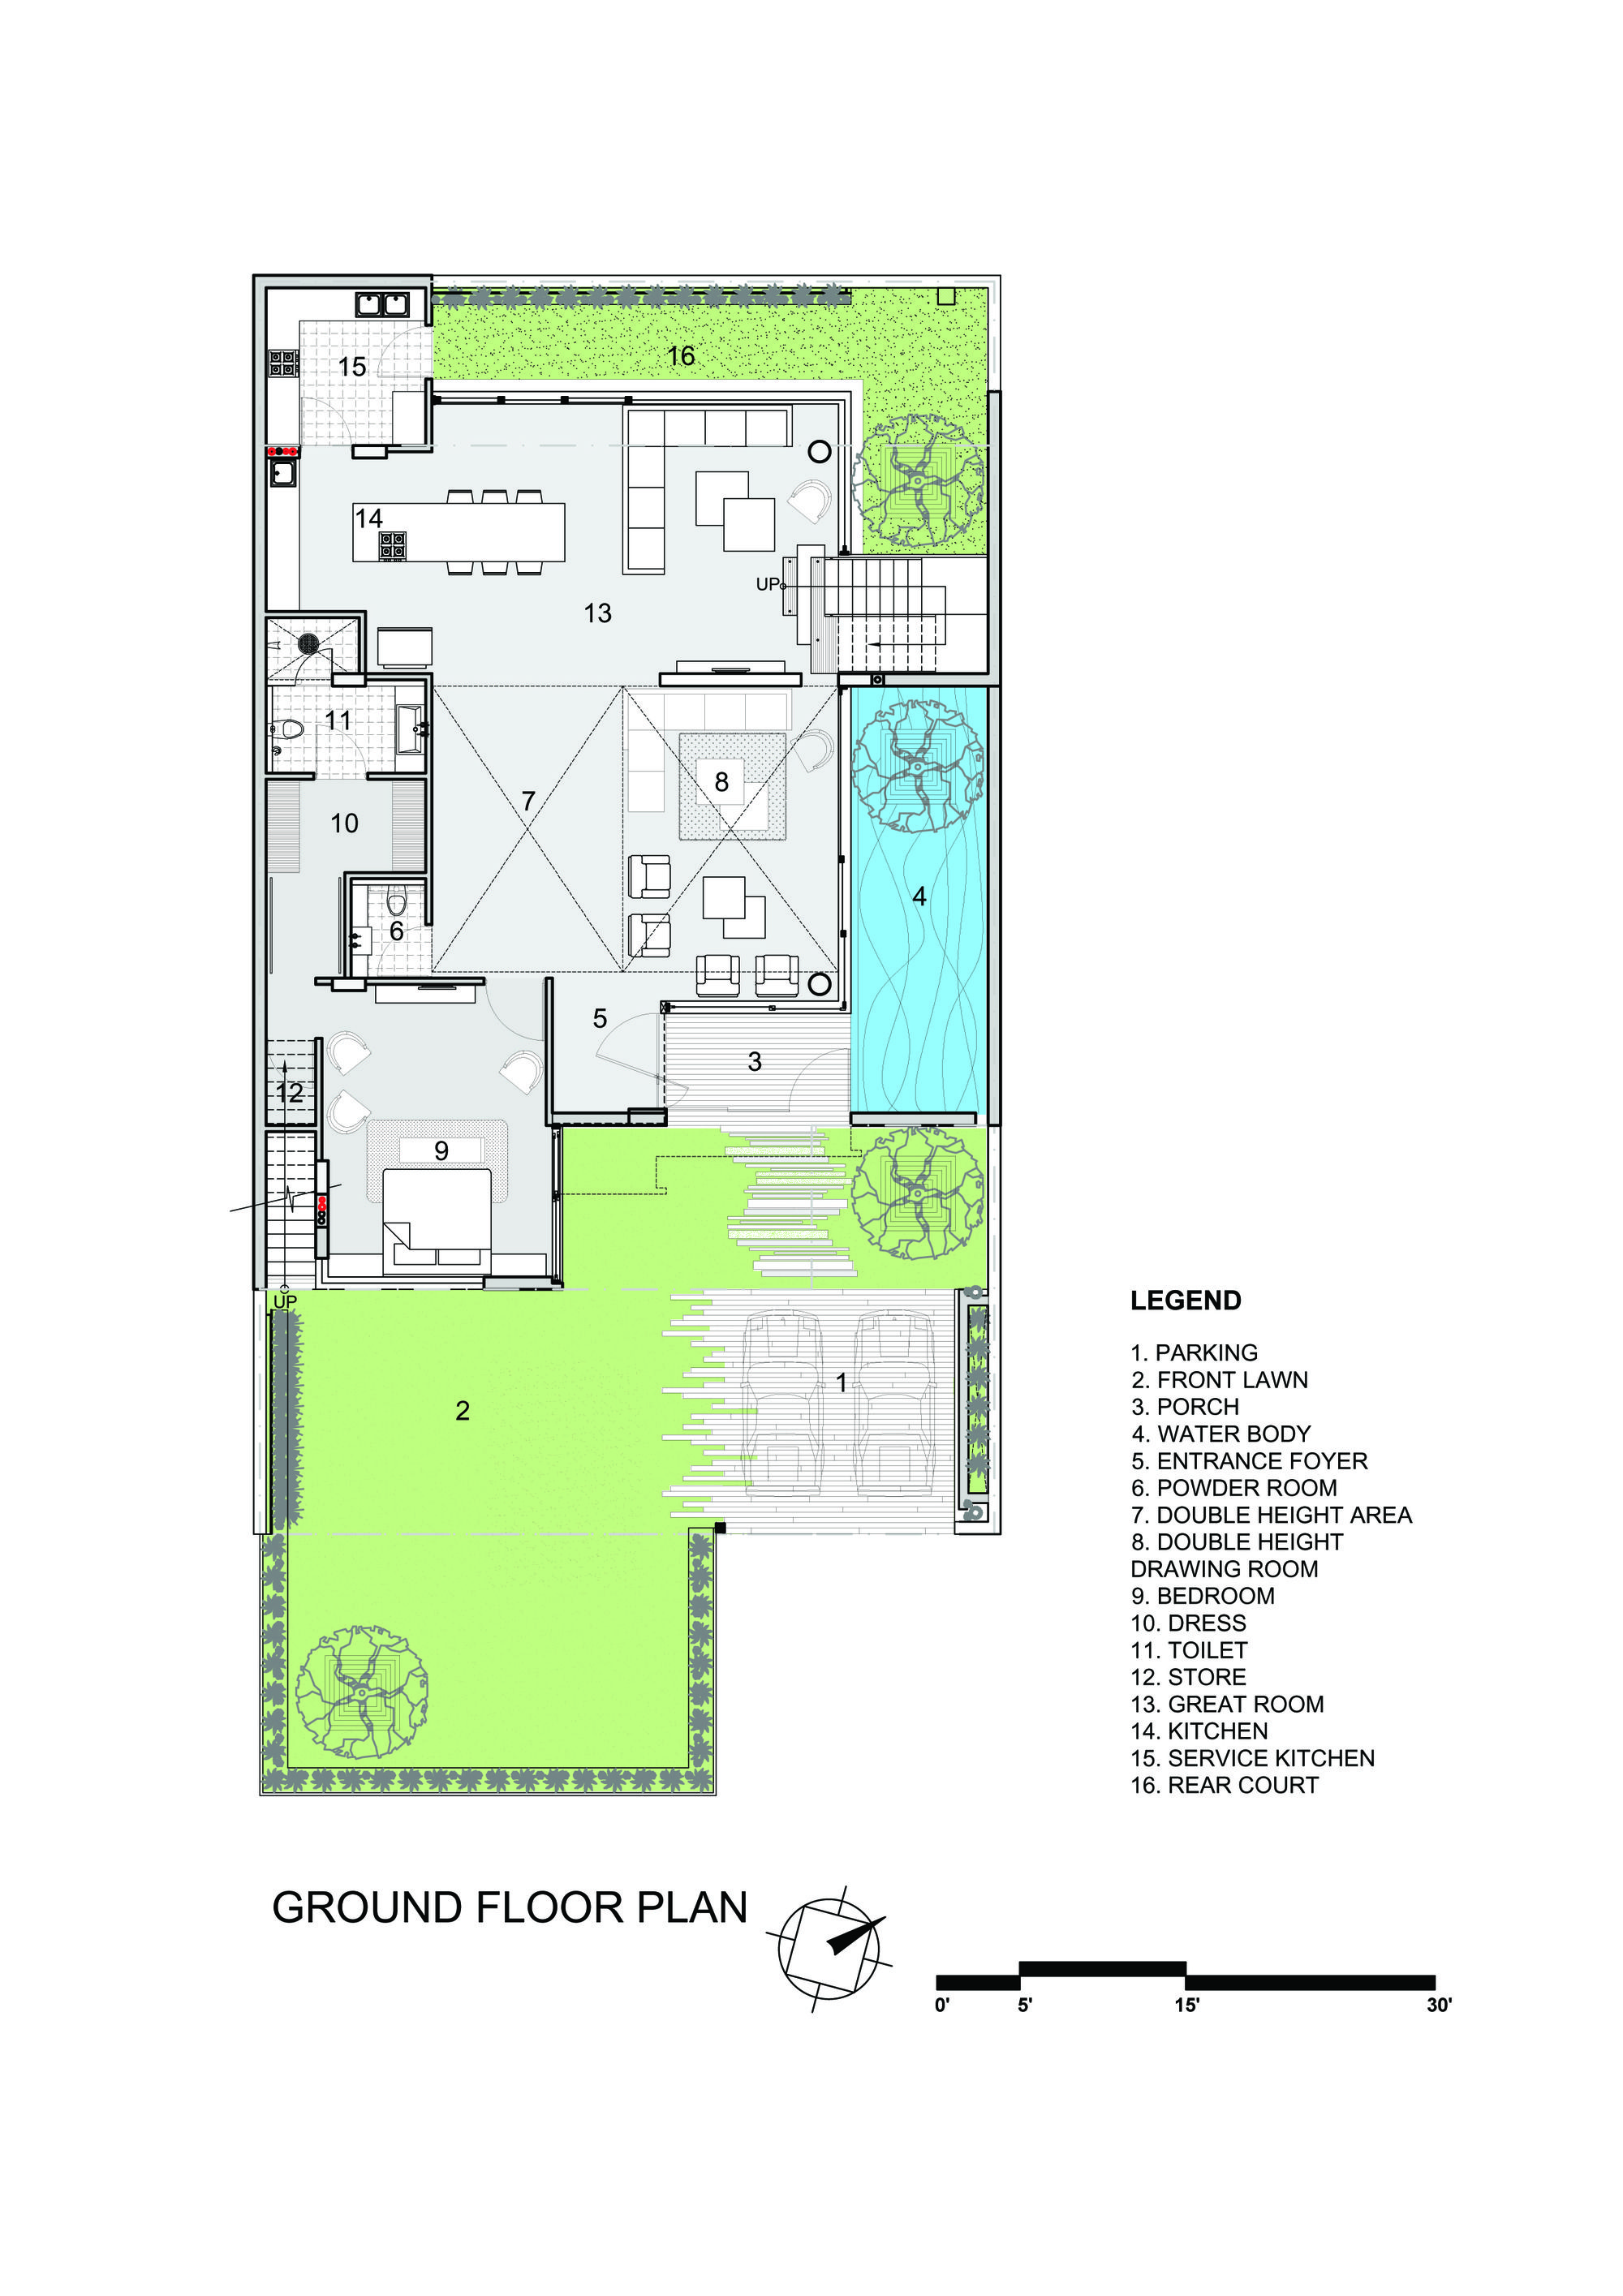 Residence 913 Charged Voids Ground Floor Plan Floor Plans How To Plan